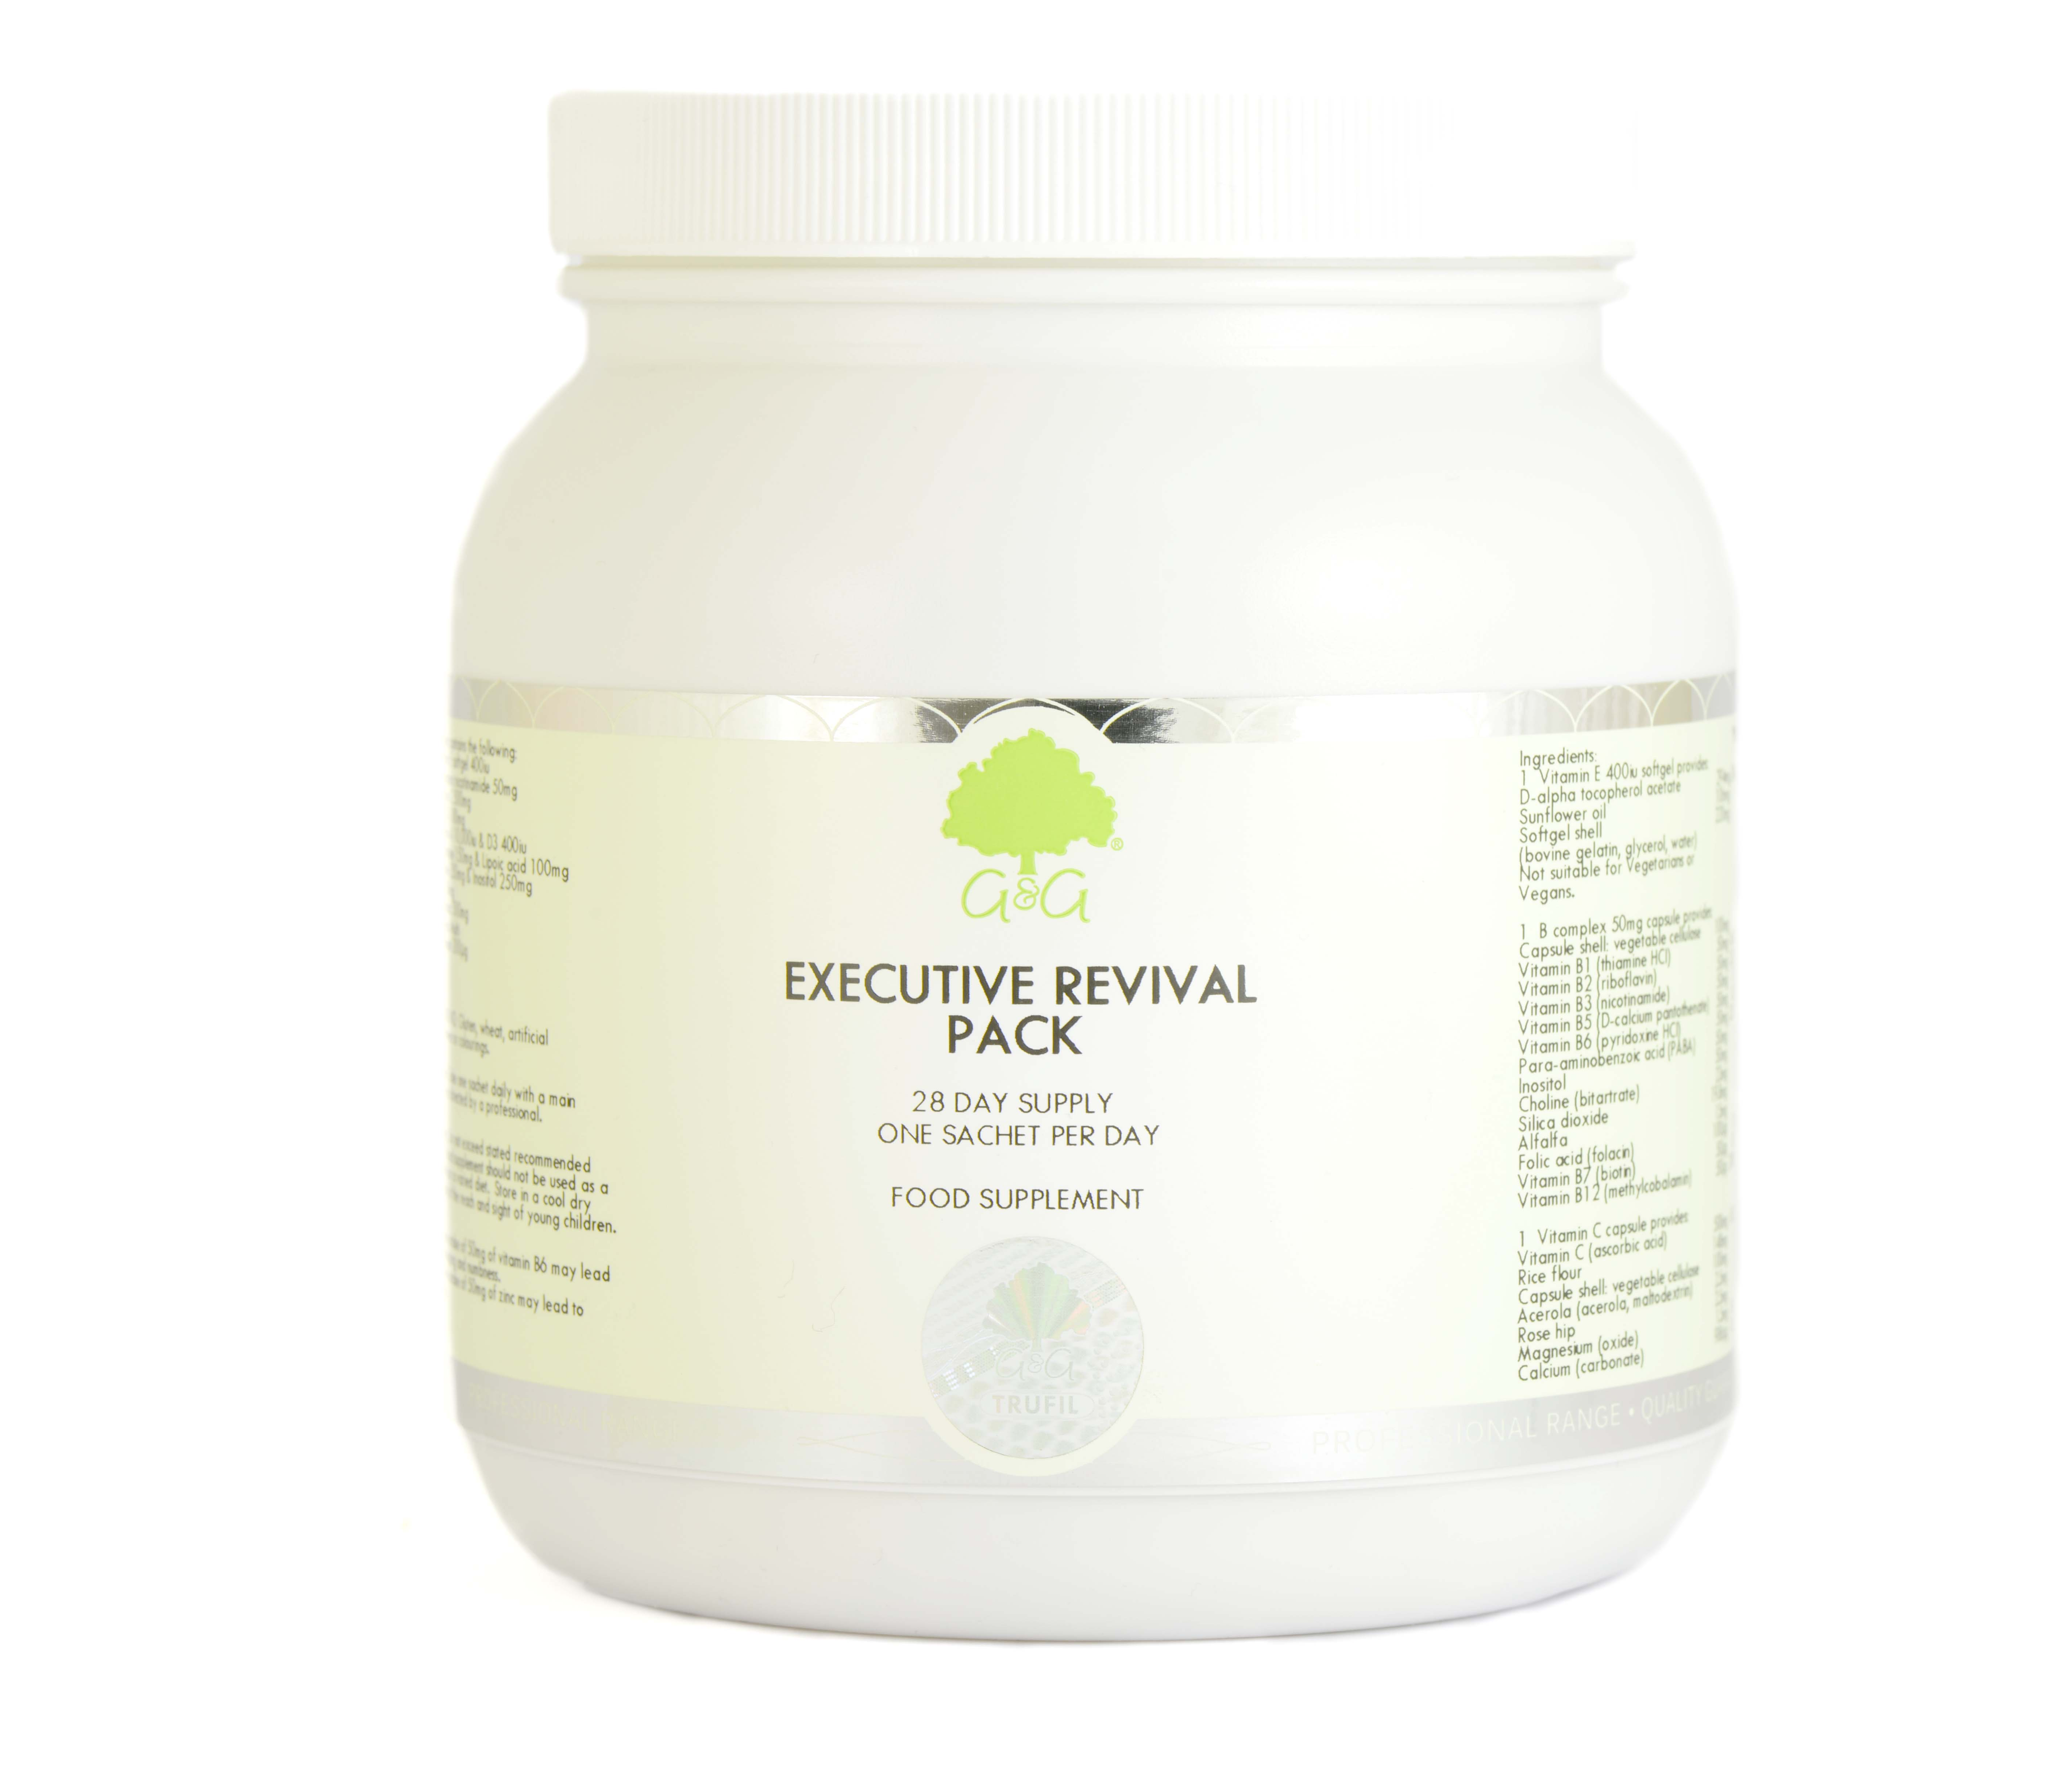 Executive Revival Pack 28 Day Supply